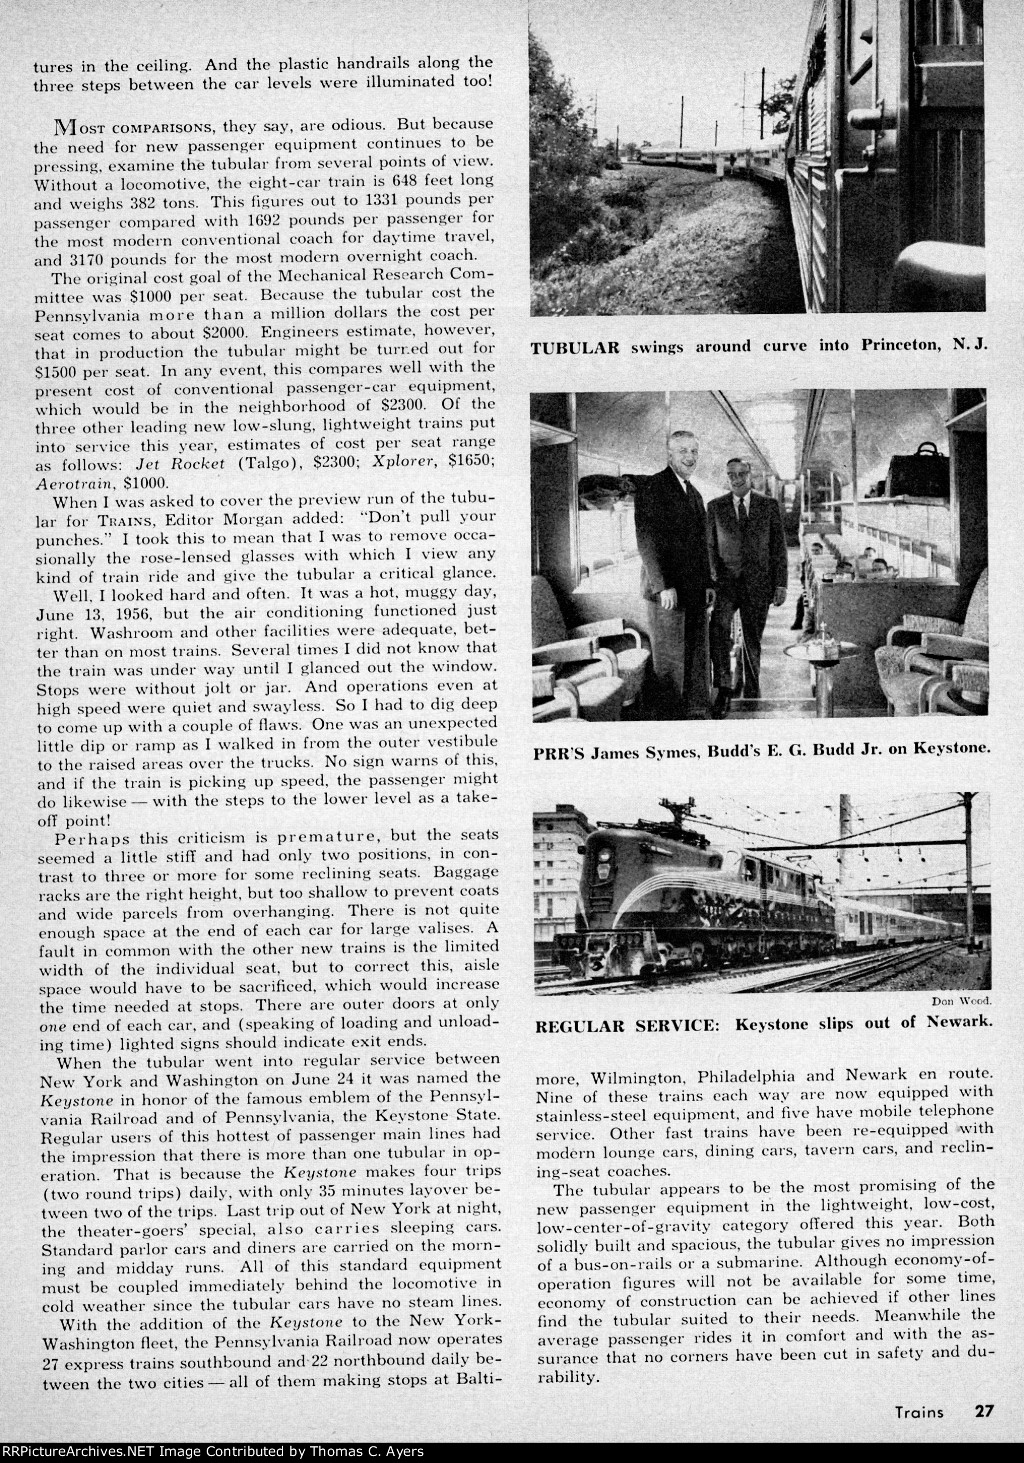 """""""The Ankle-View Train,"""" Page 27, 1956"""